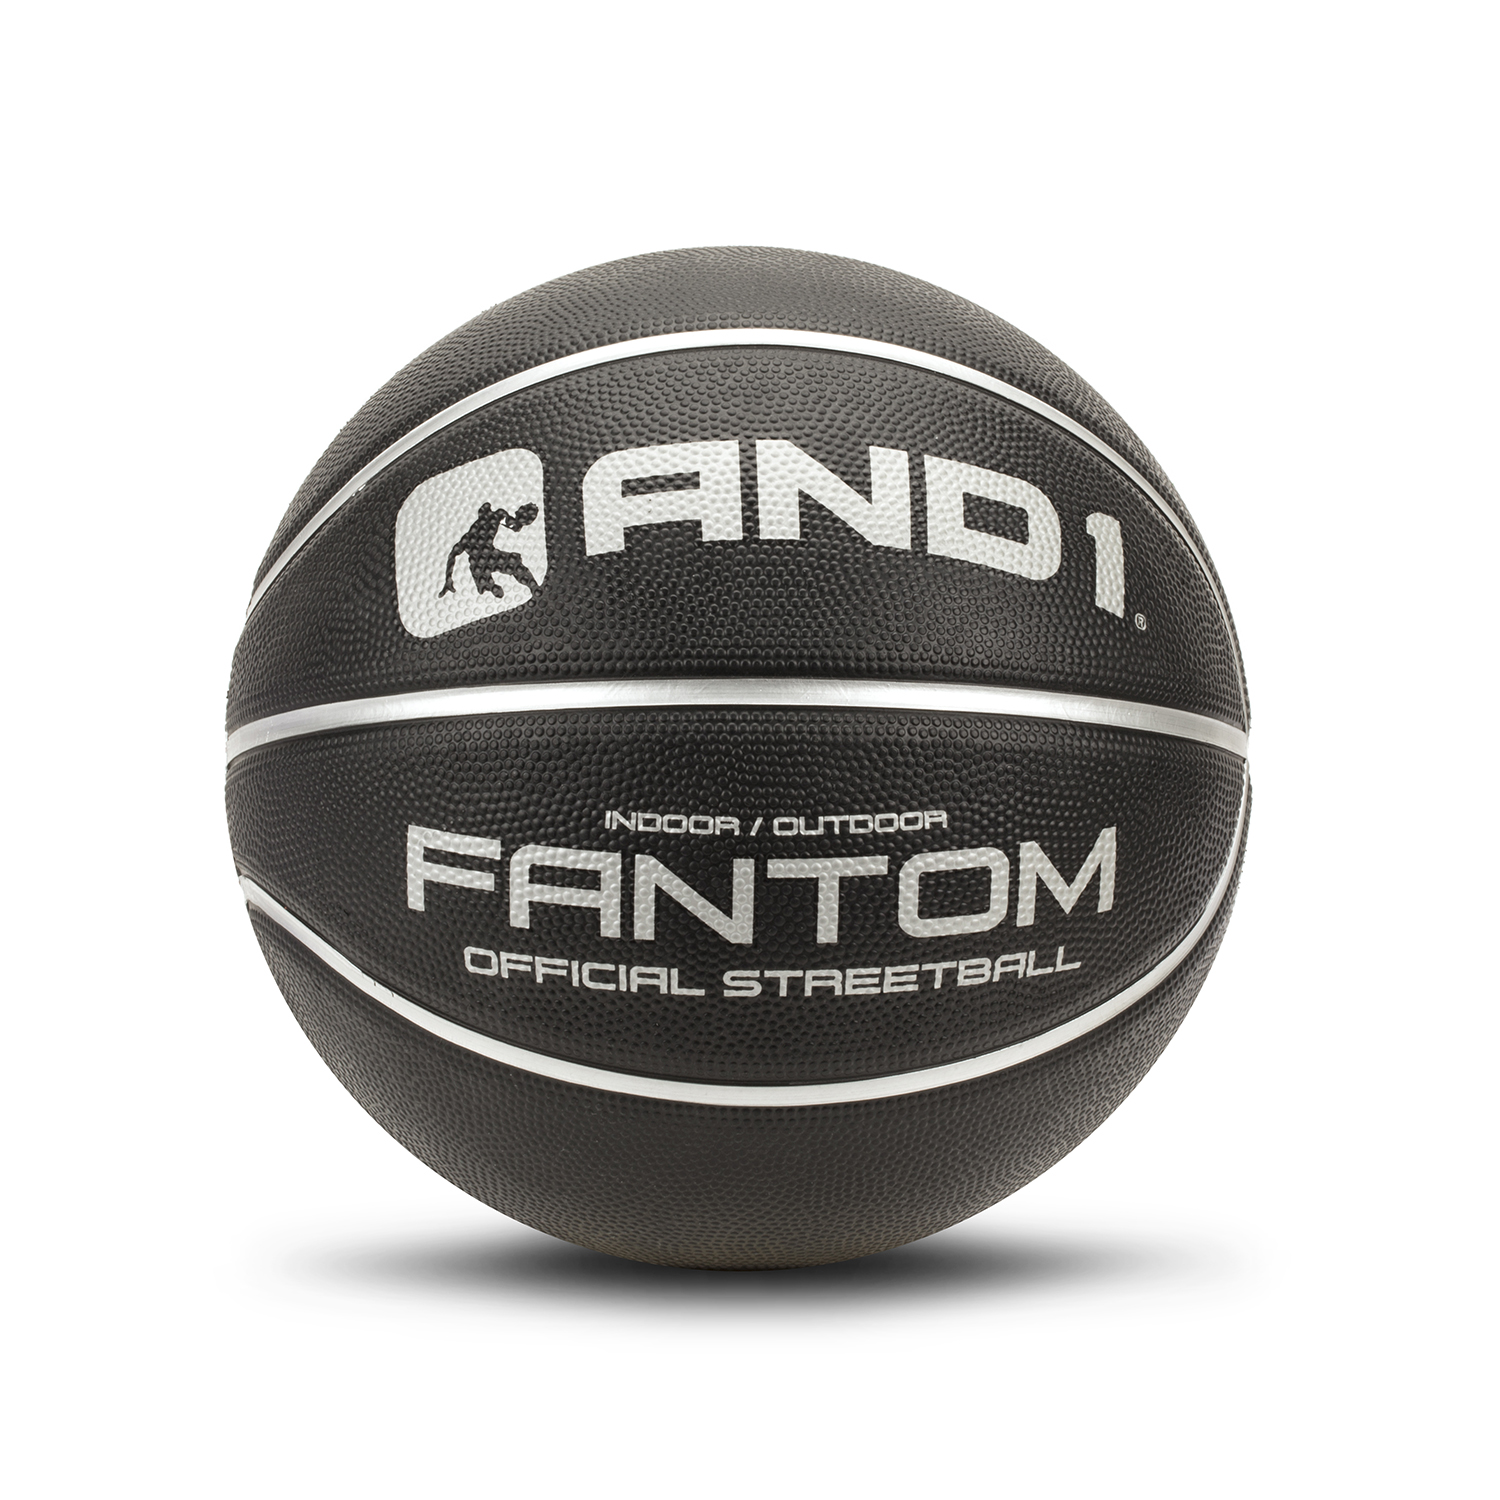 "And1 Fantom Street Basketball, Official Size 7 (29.5"")"